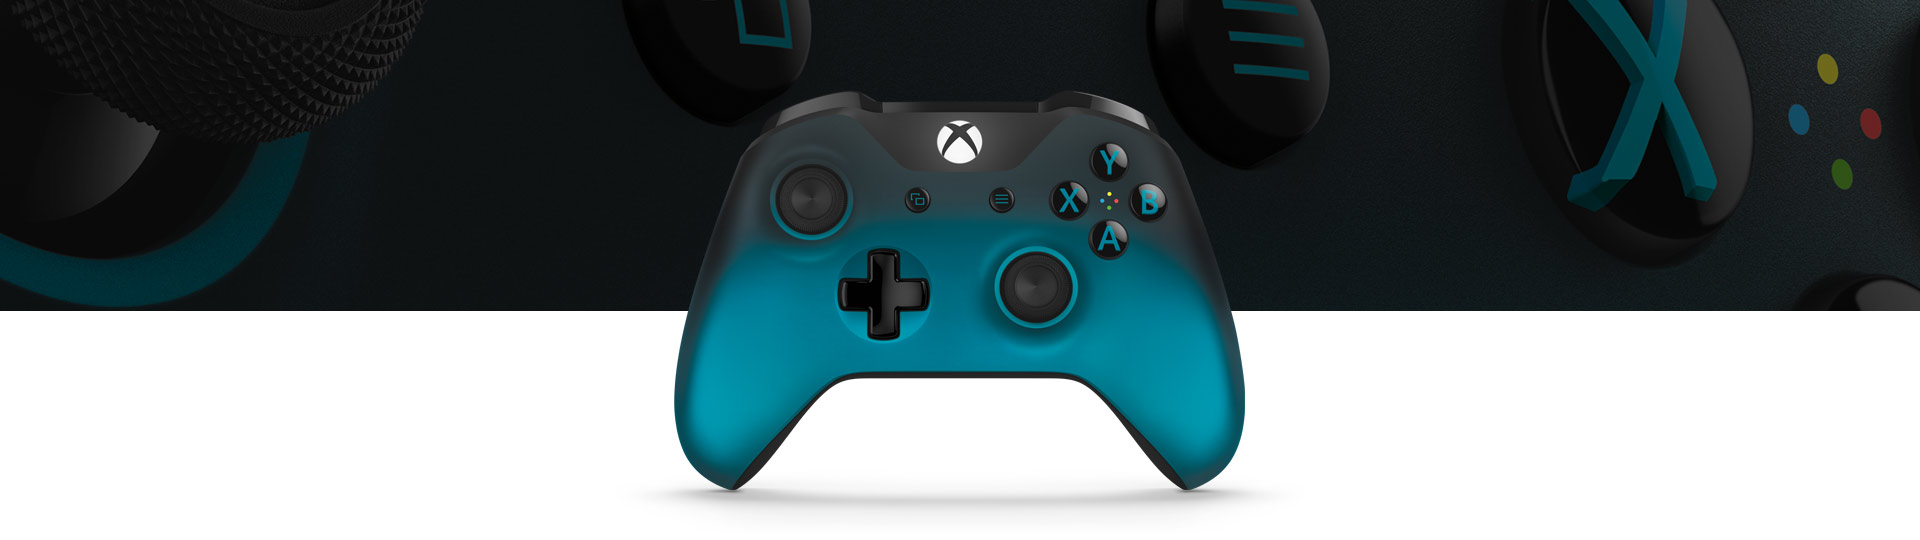 Xbox Wireless Controller Ocean Shadow Special Edition